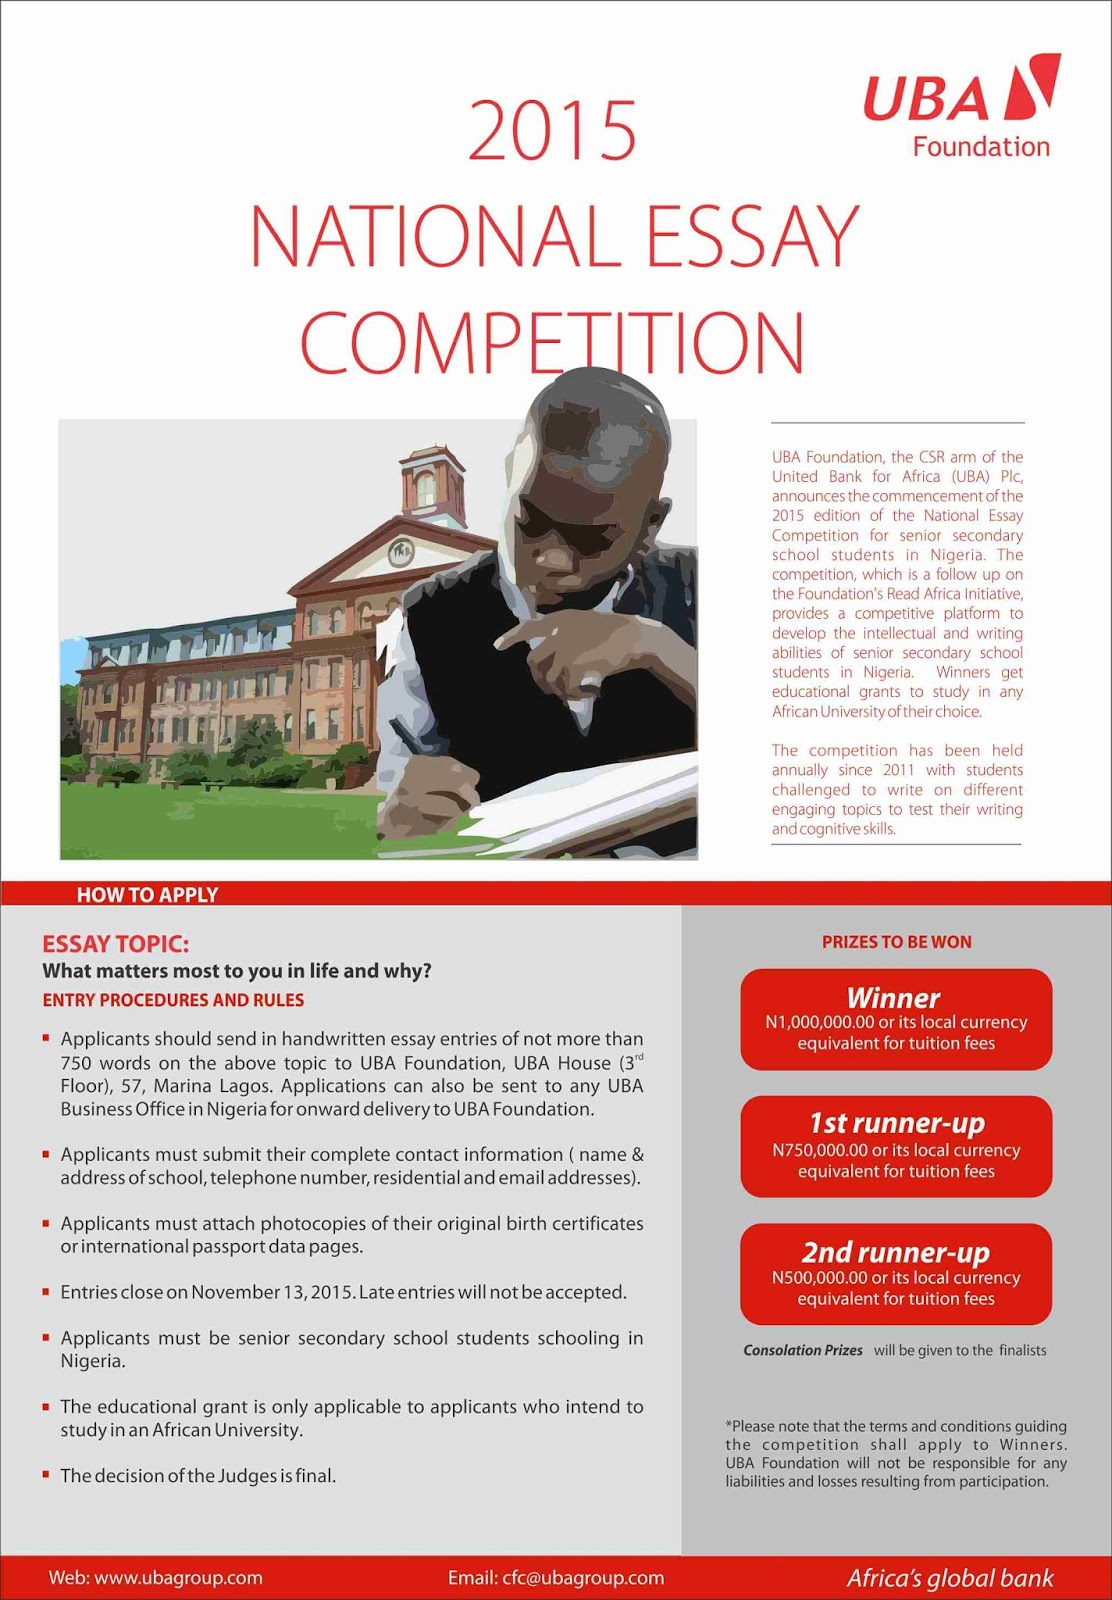 mtn ghana foundation essay competition Ebscohost serves thousands of libraries with premium essays, articles and other content including mtn group limited, swot analysis get access to over 12 million other articles.